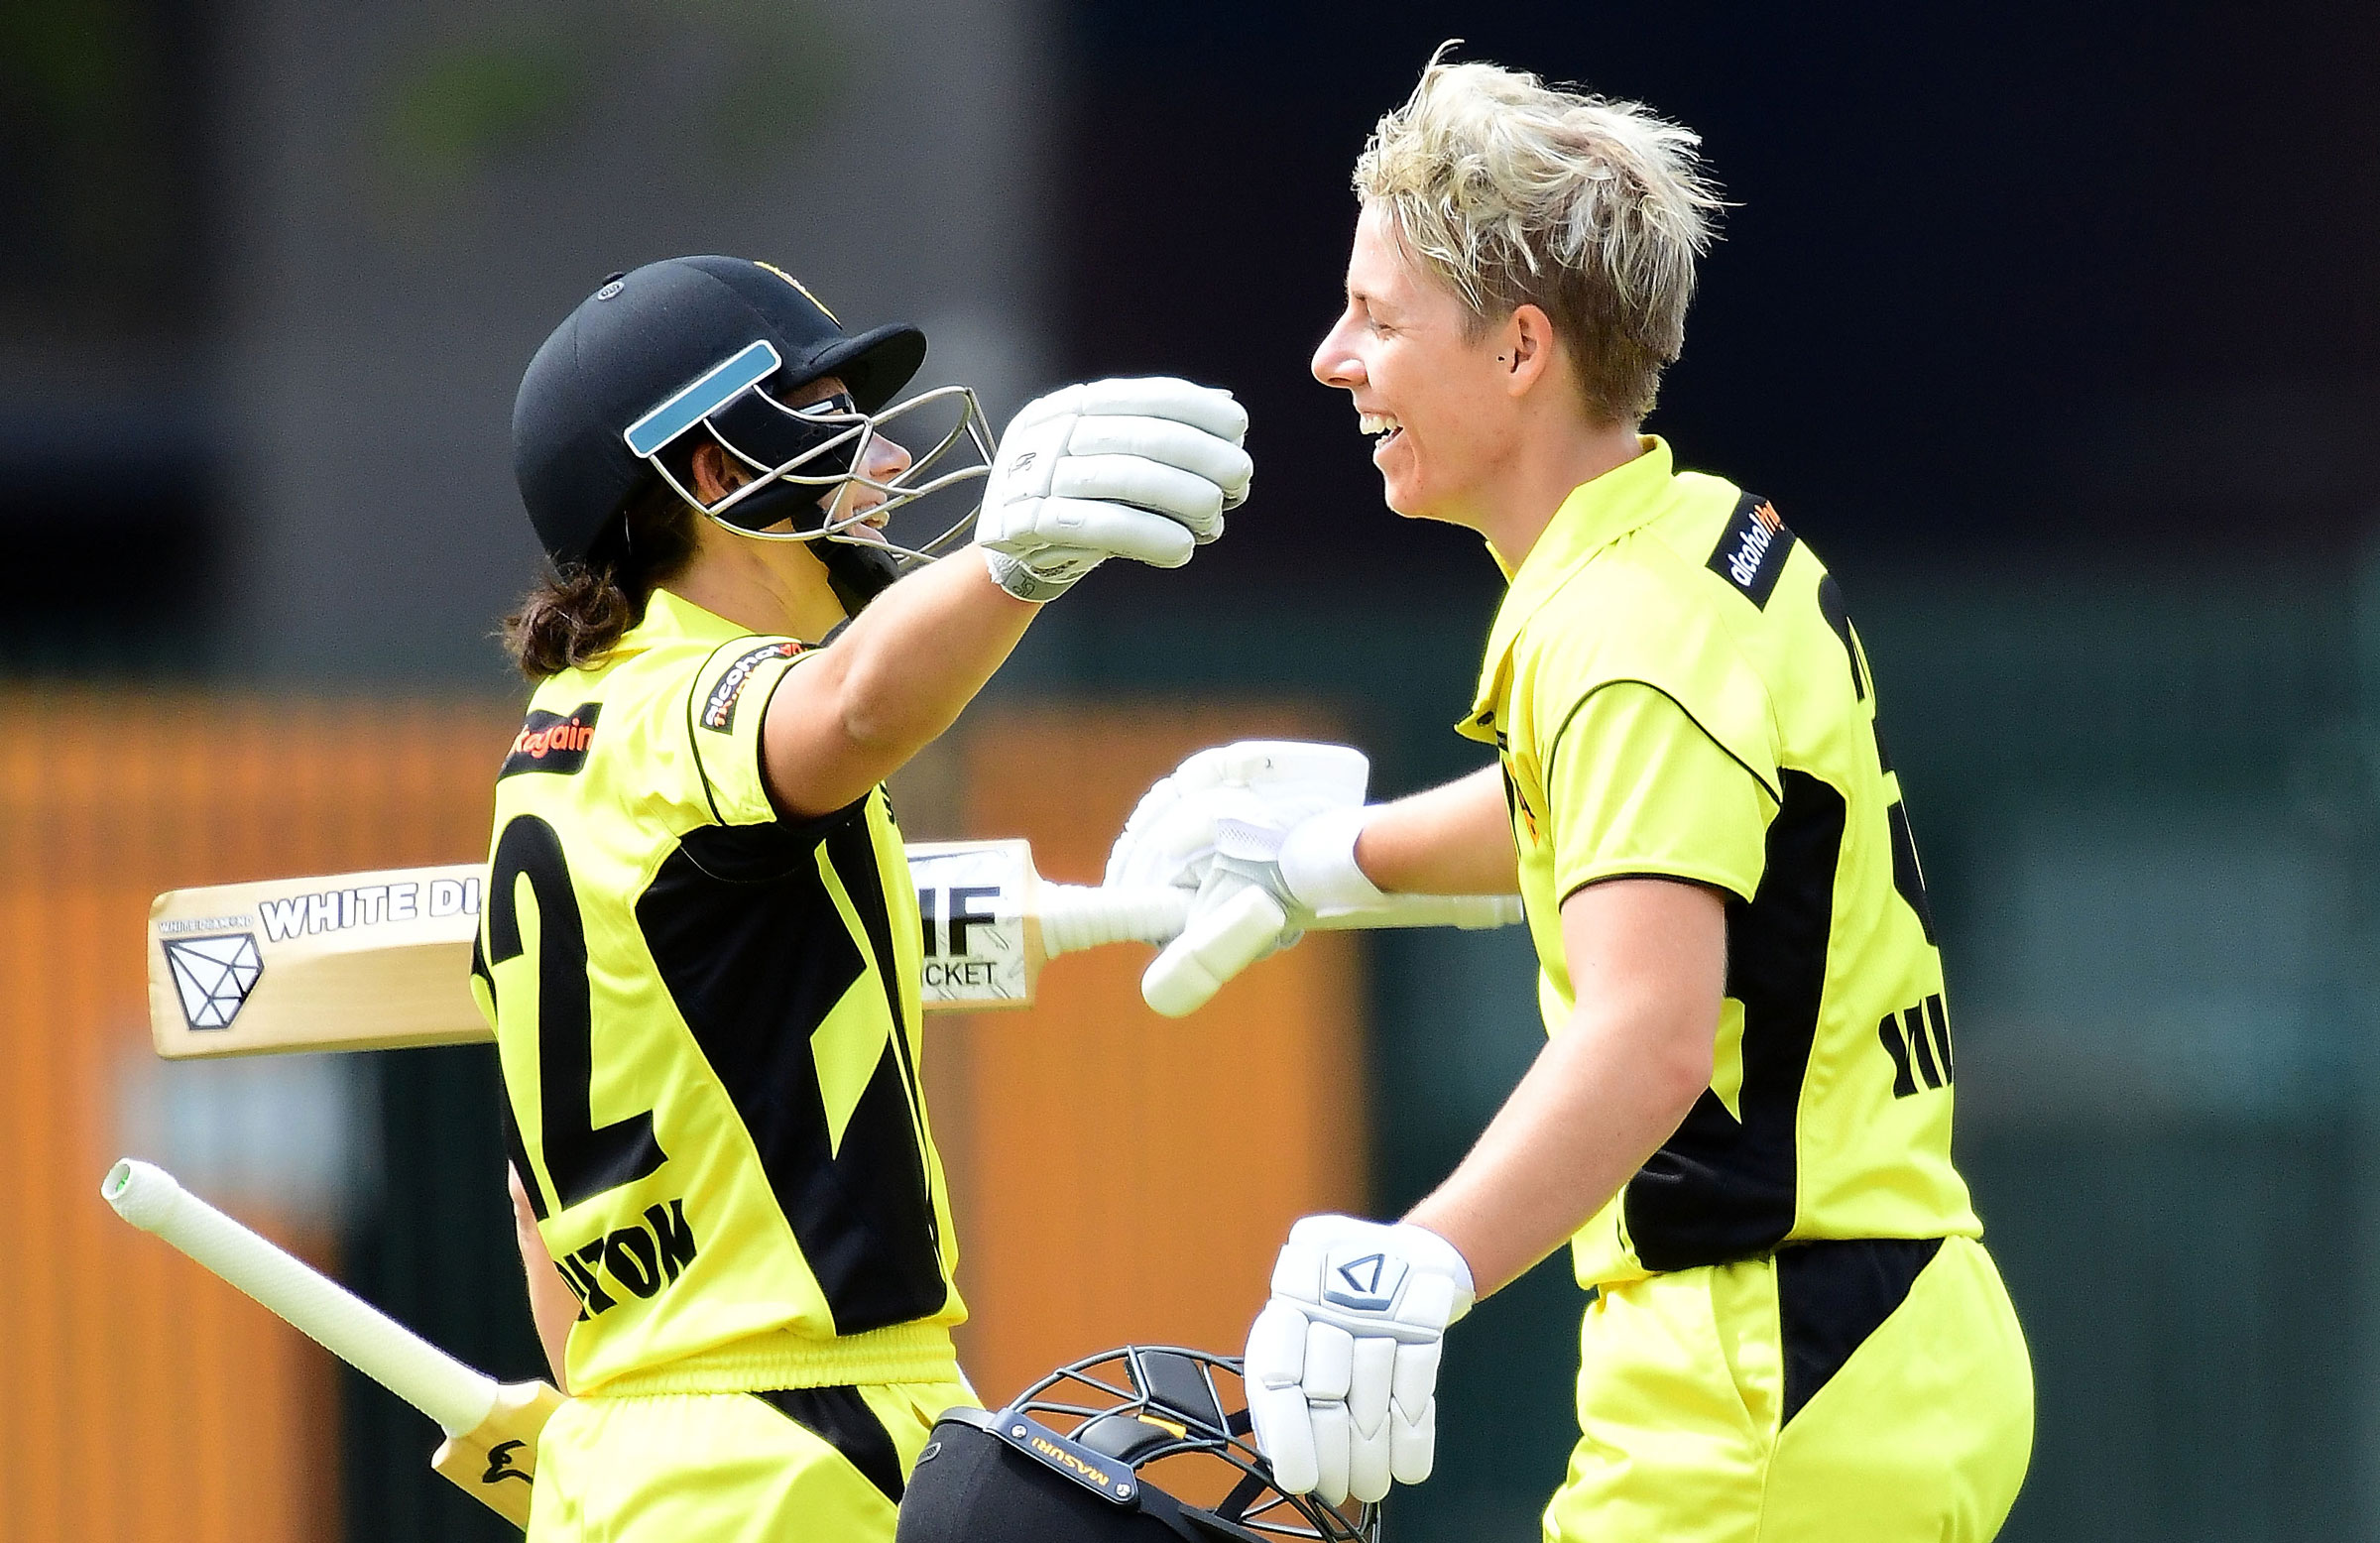 Bolton and Villani are the keys to the Fury batting line-up // Getty